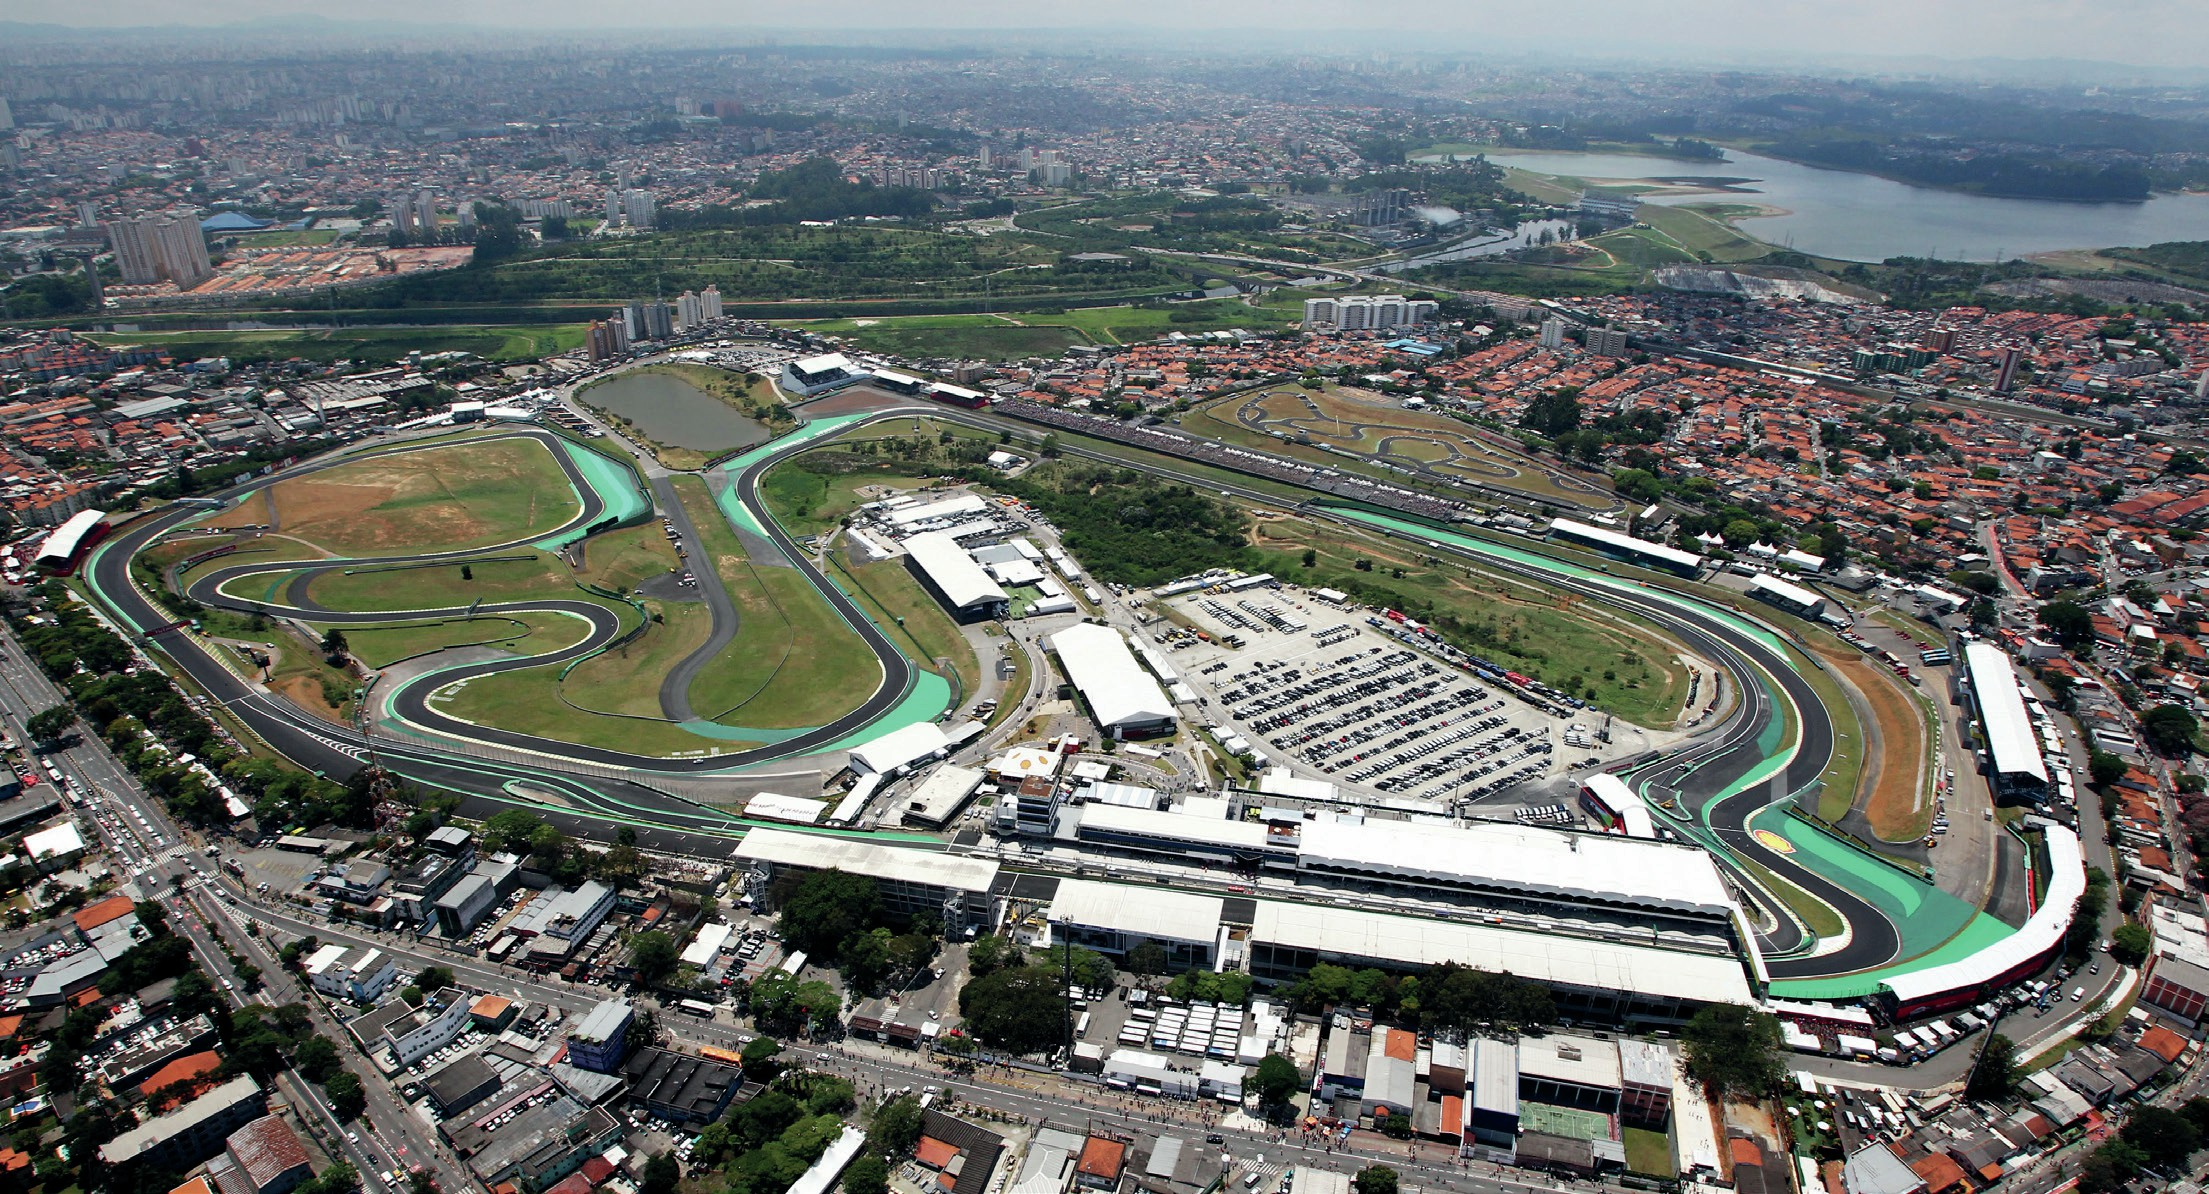 Interlagos circuit from the air